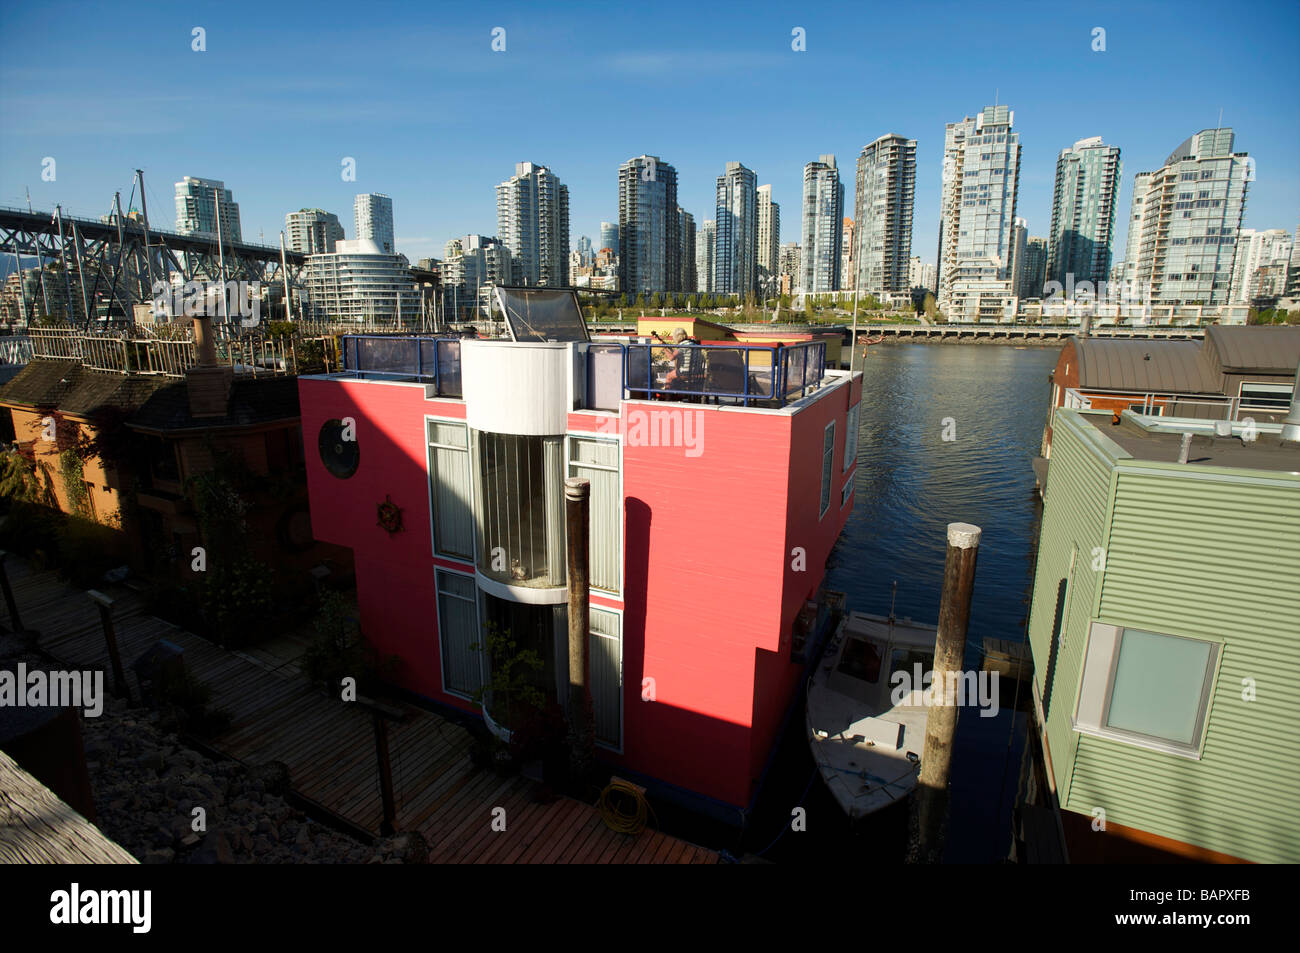 House boats in False Creek, with the Condo towers of Yaletown in the background.  Vancouver BC, Canada - Stock Image